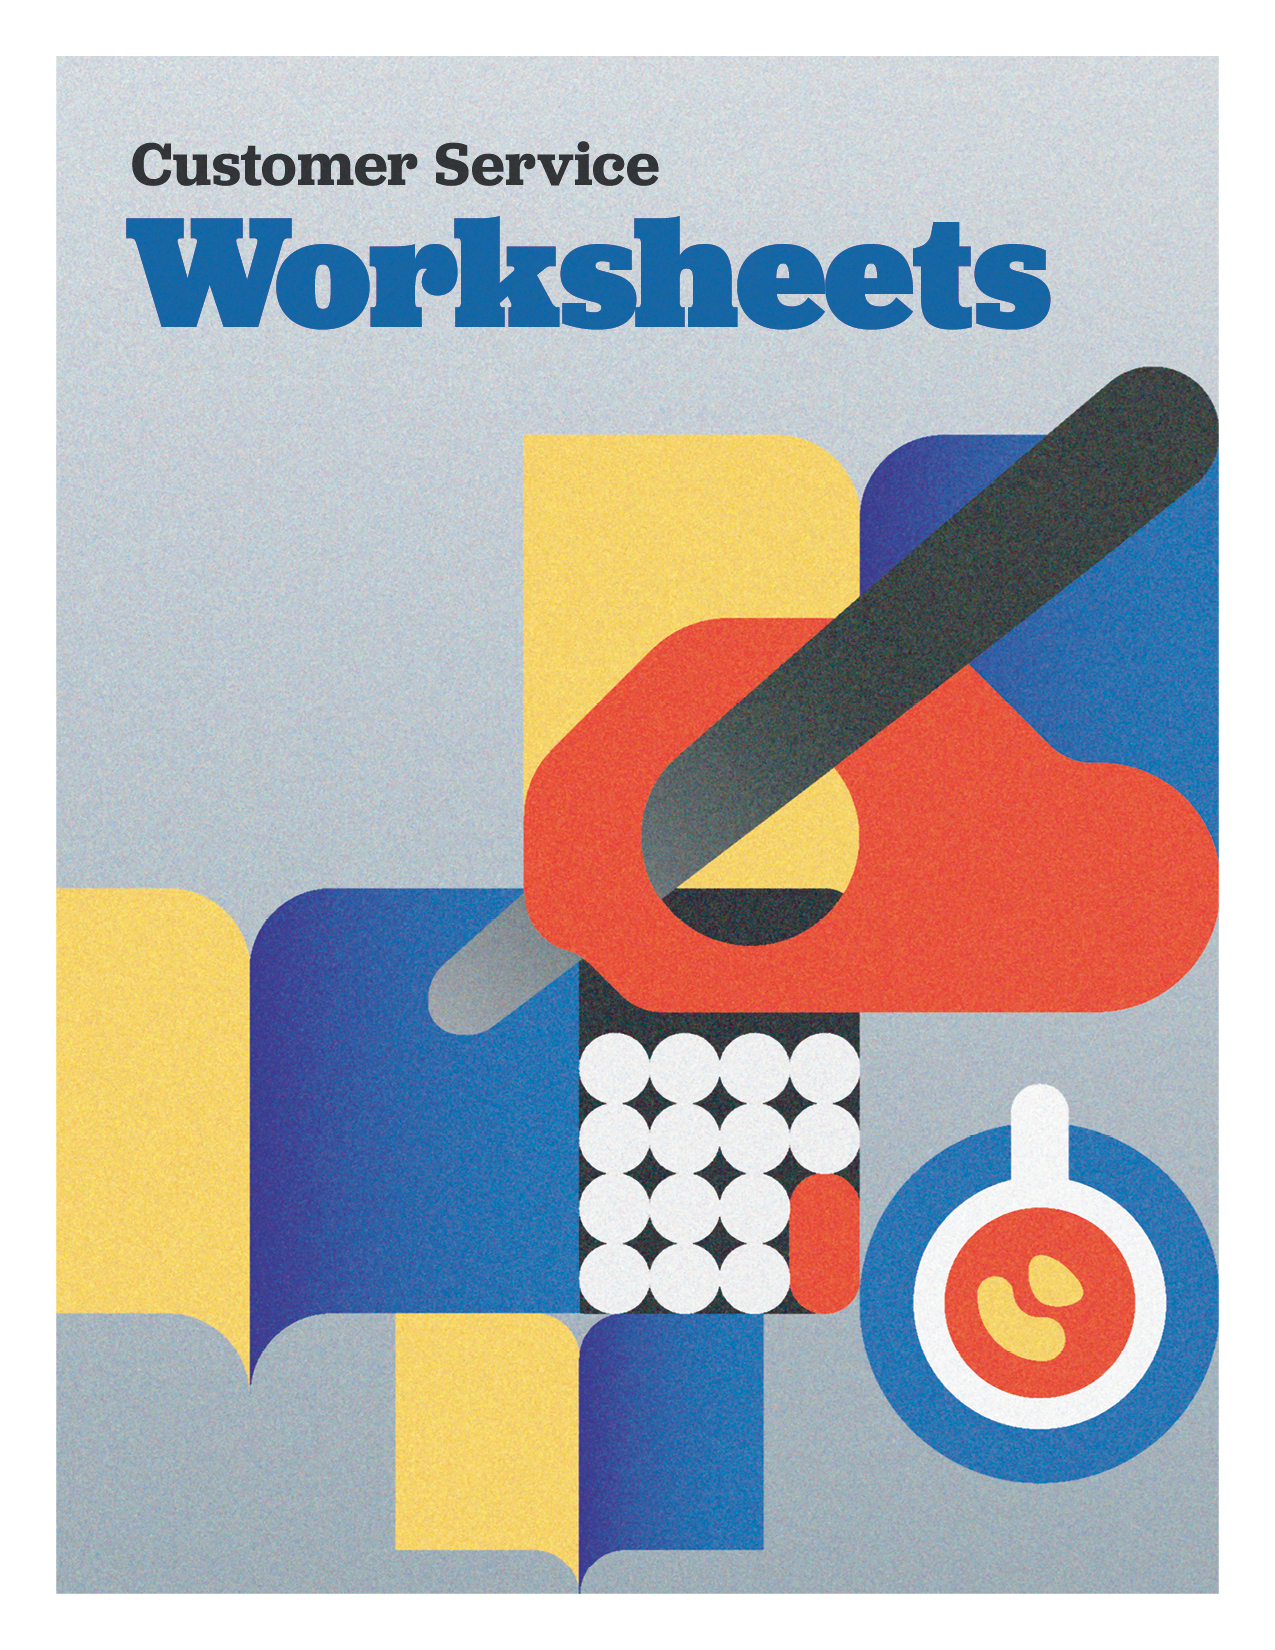 Customer Service Worksheets Resources